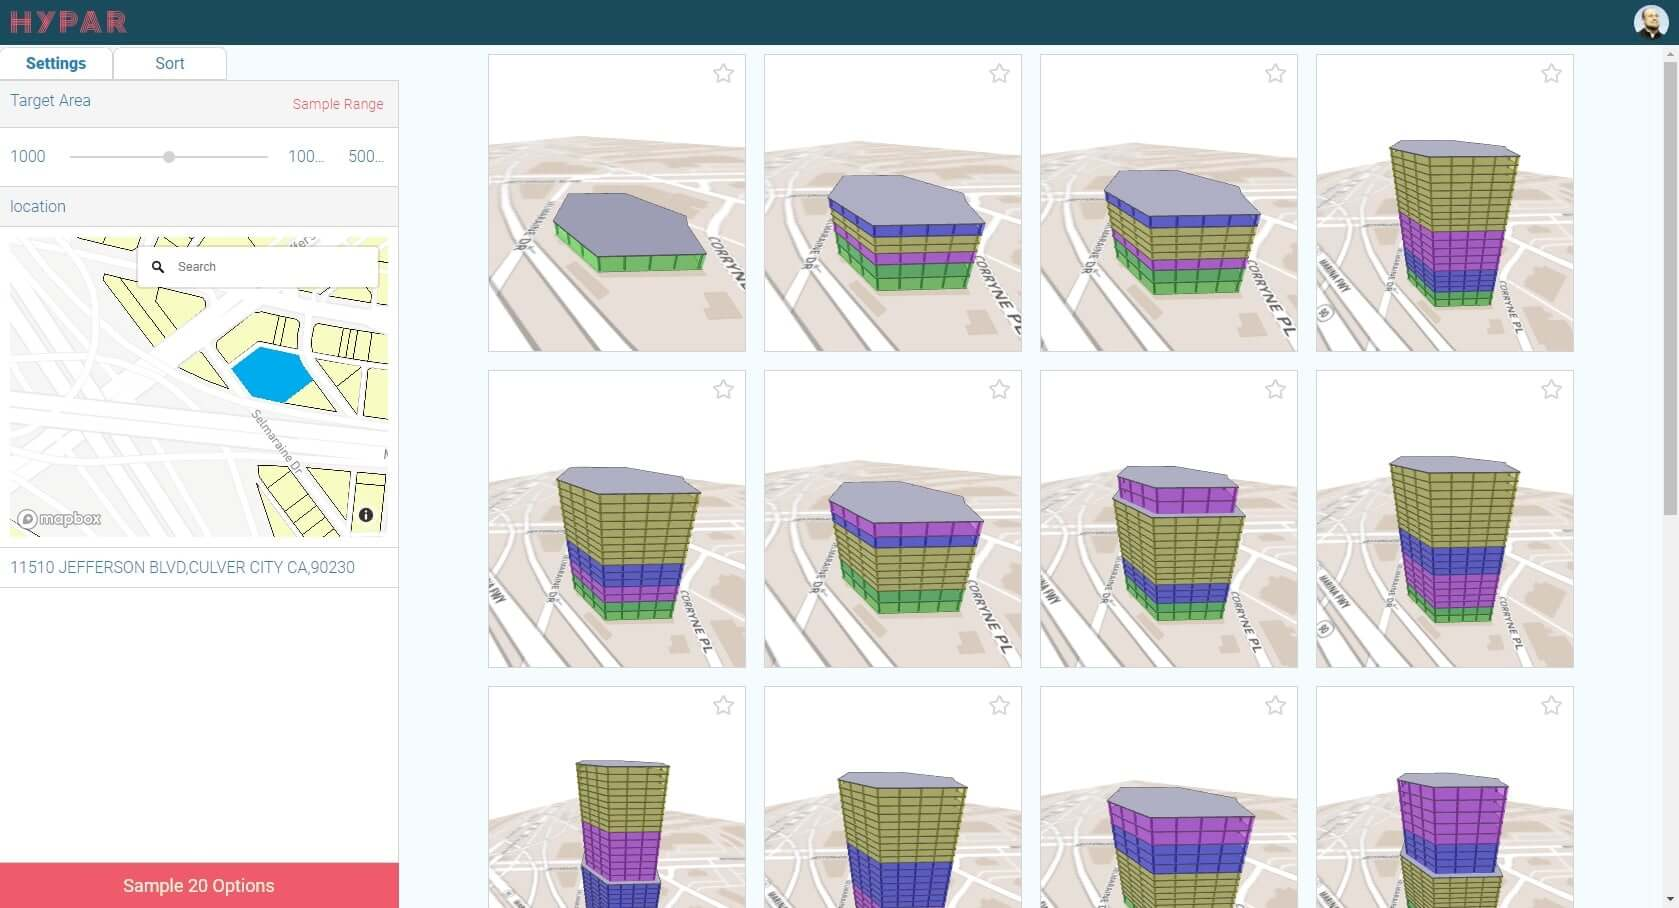 BIM Software - Hypar